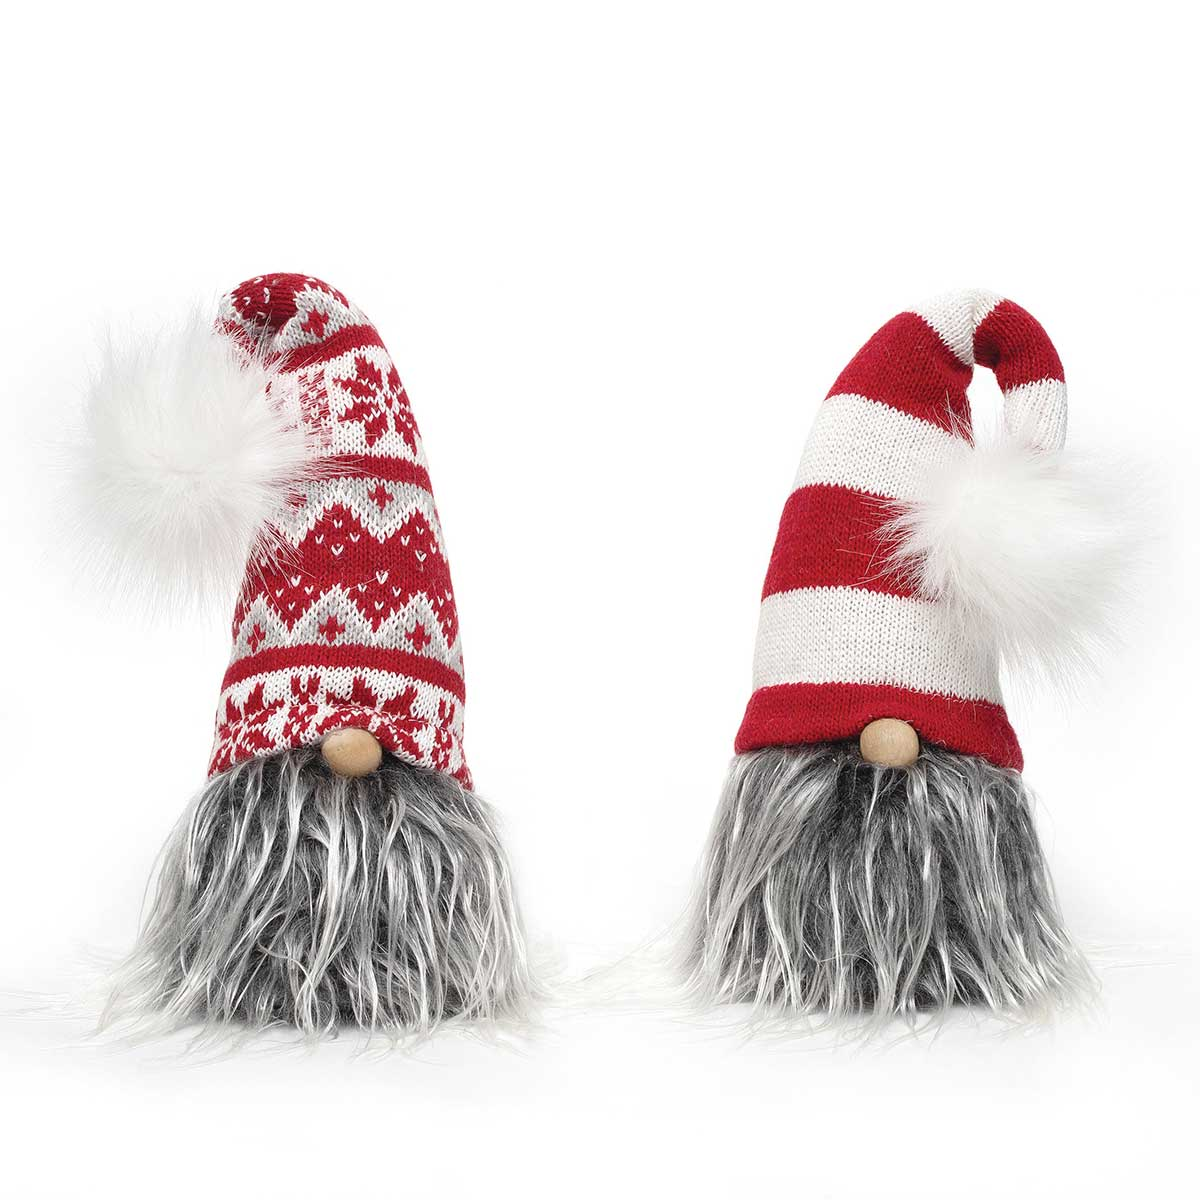 GNOME HEAD WITH STAR POM, WIRED